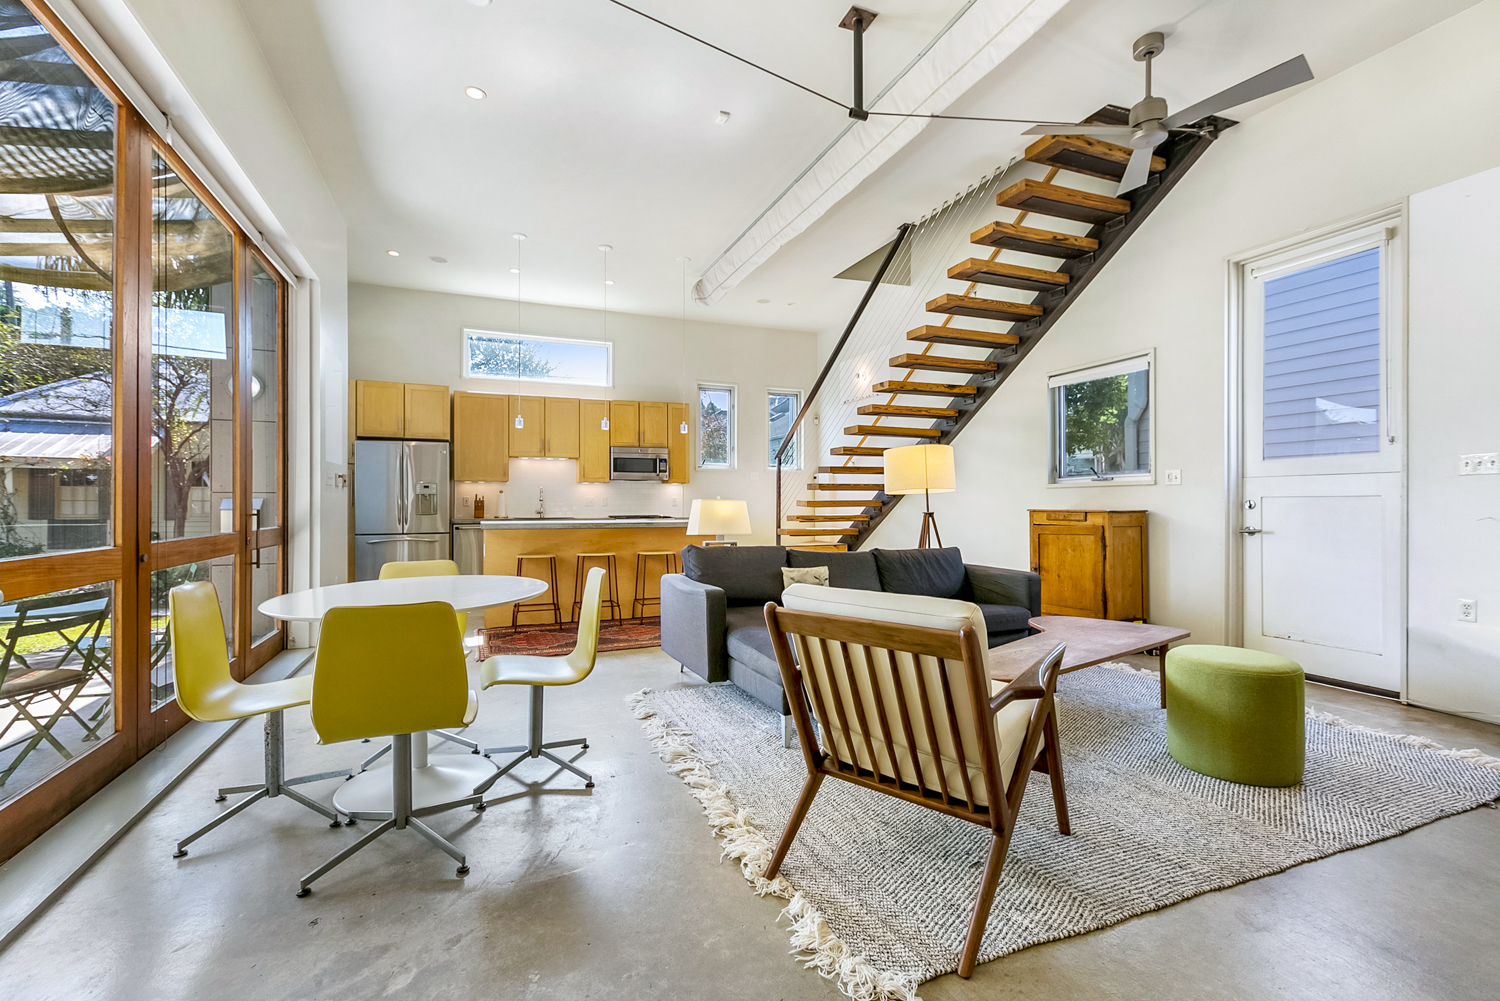 Uptown, Condo, 2 beds, 3.0 baths, $5000 per month New Orleans Rental - devie image_1